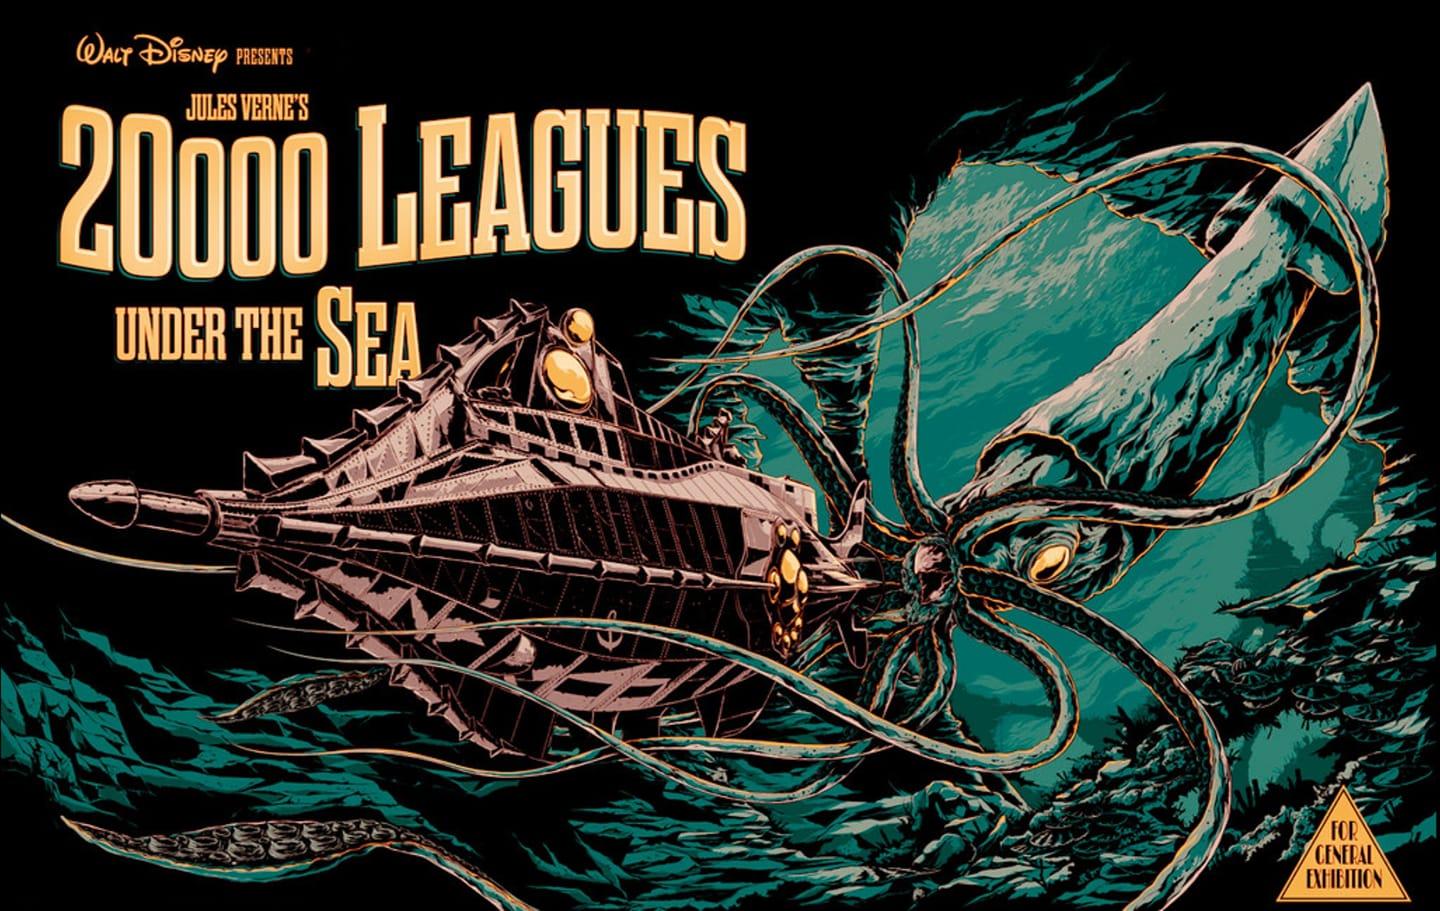 20000 Leagues Under the Sea (1954) banner image